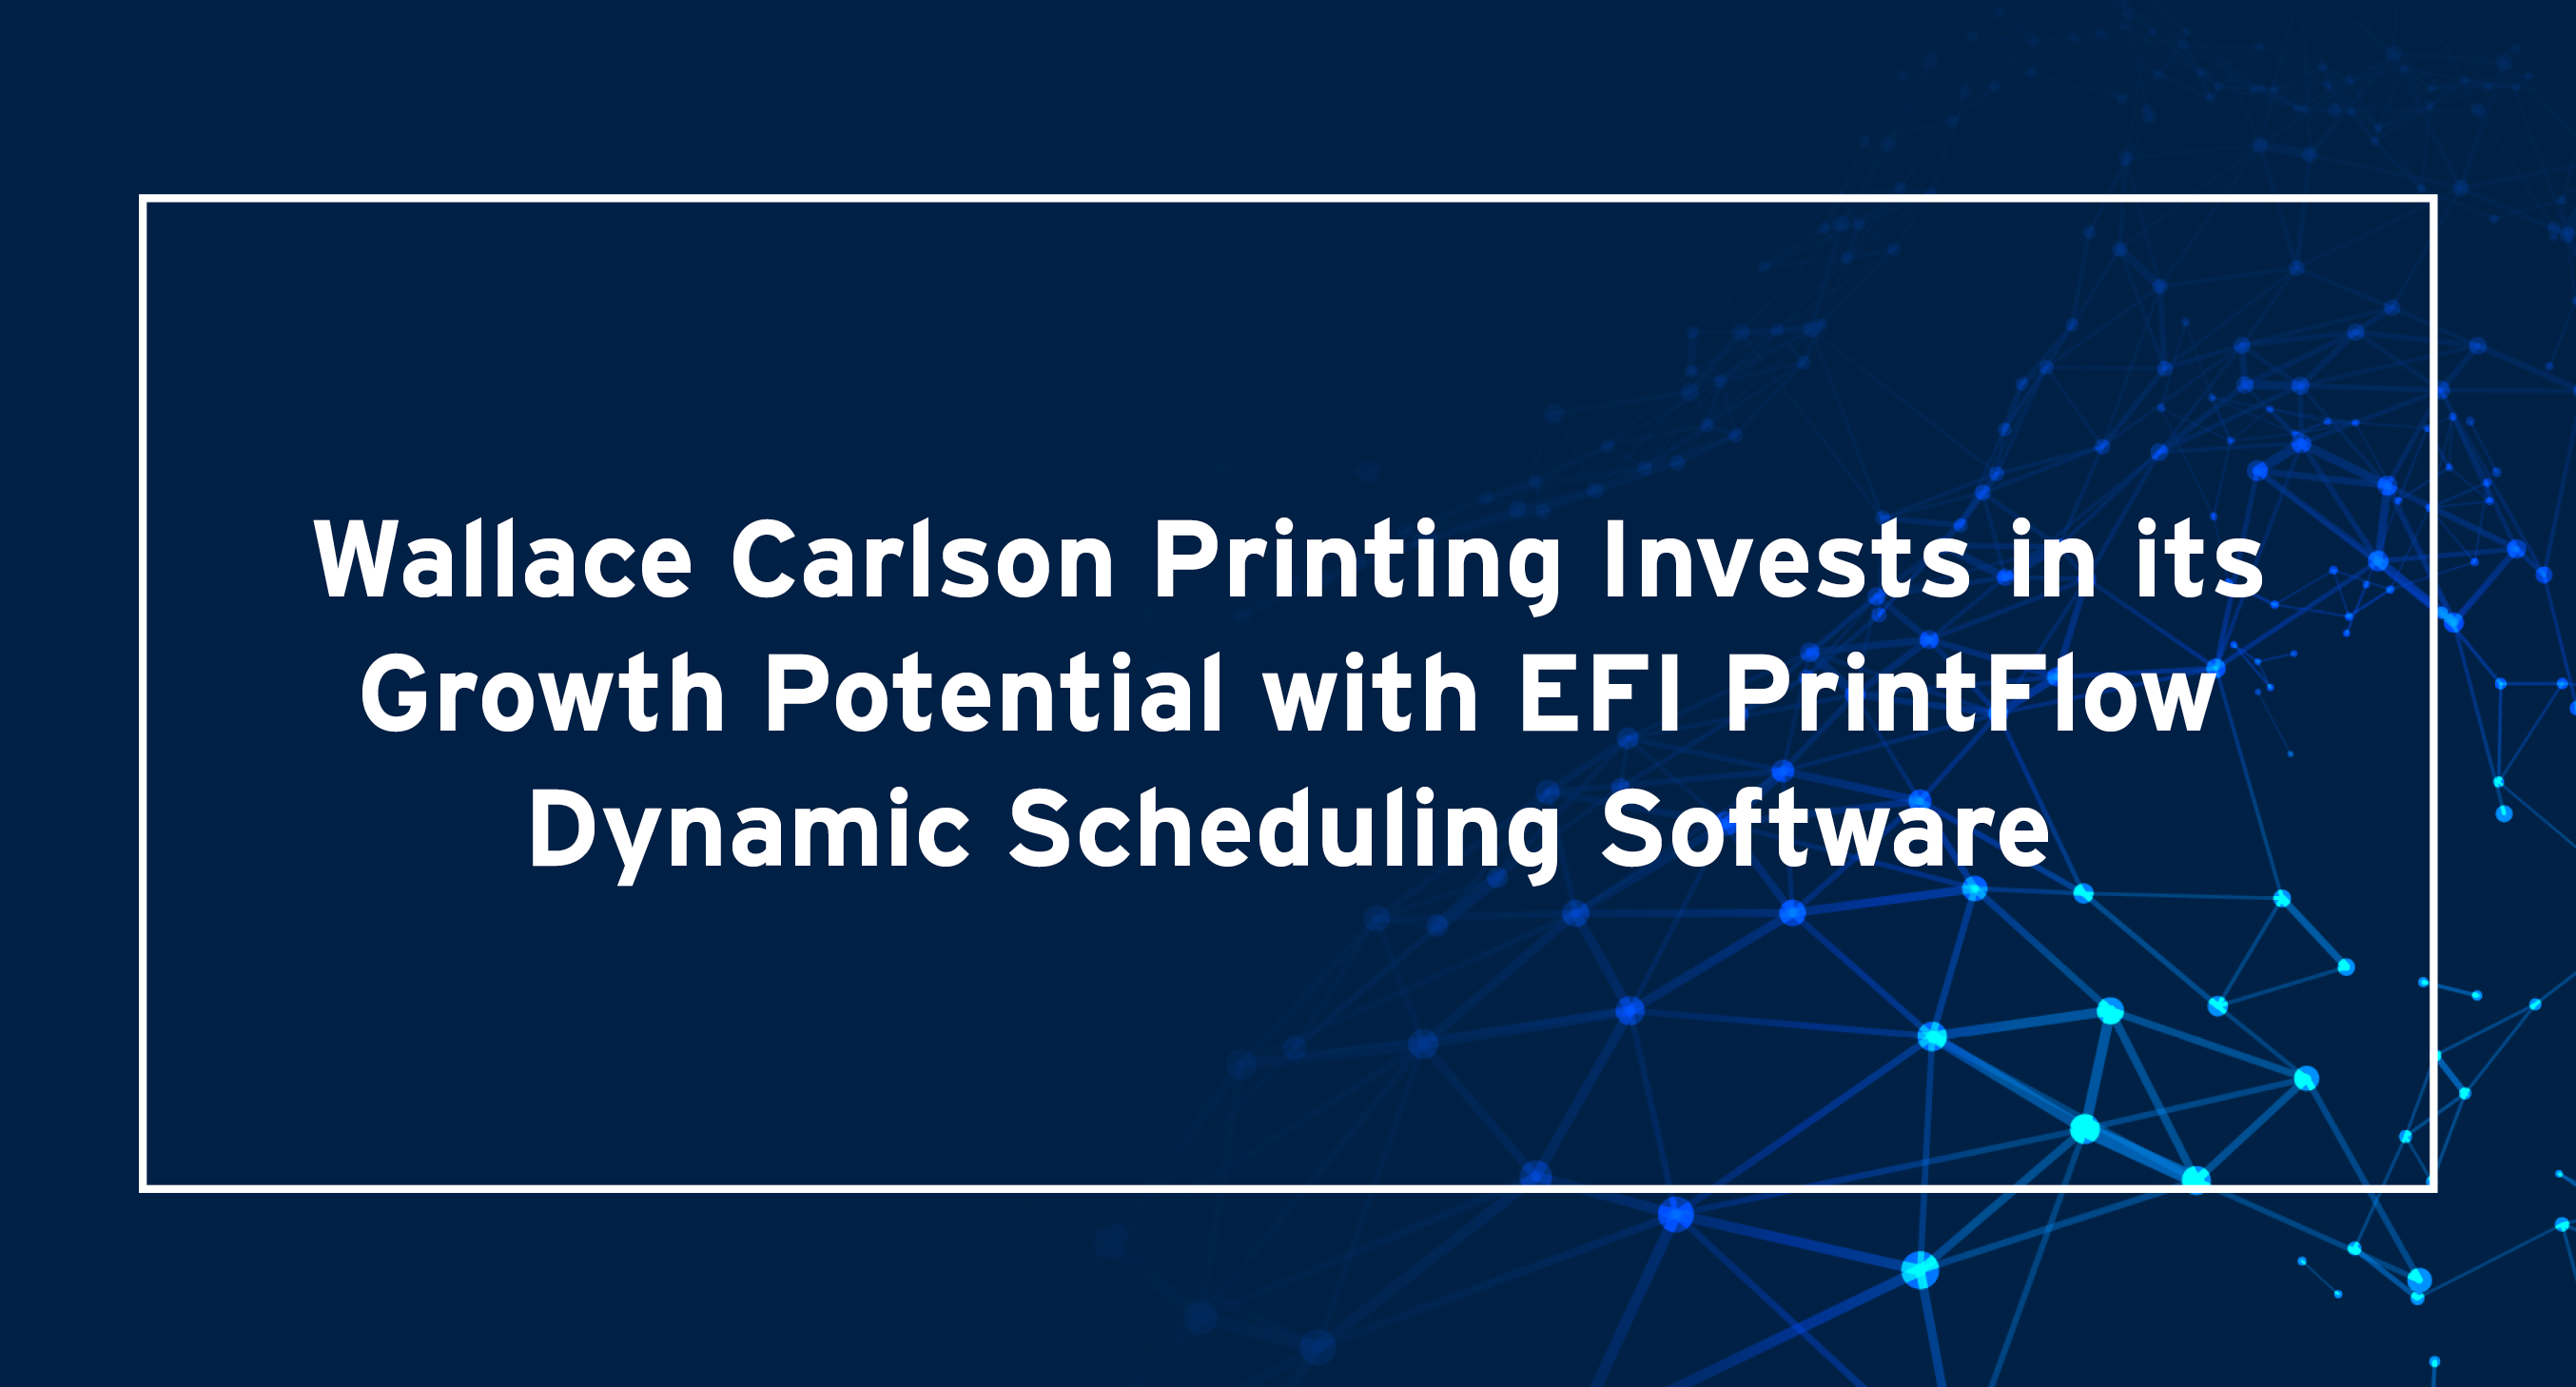 Wallace Carlson Printing Invests in its Growth Potential with EFI PrintFlow Dynamic Scheduling Software